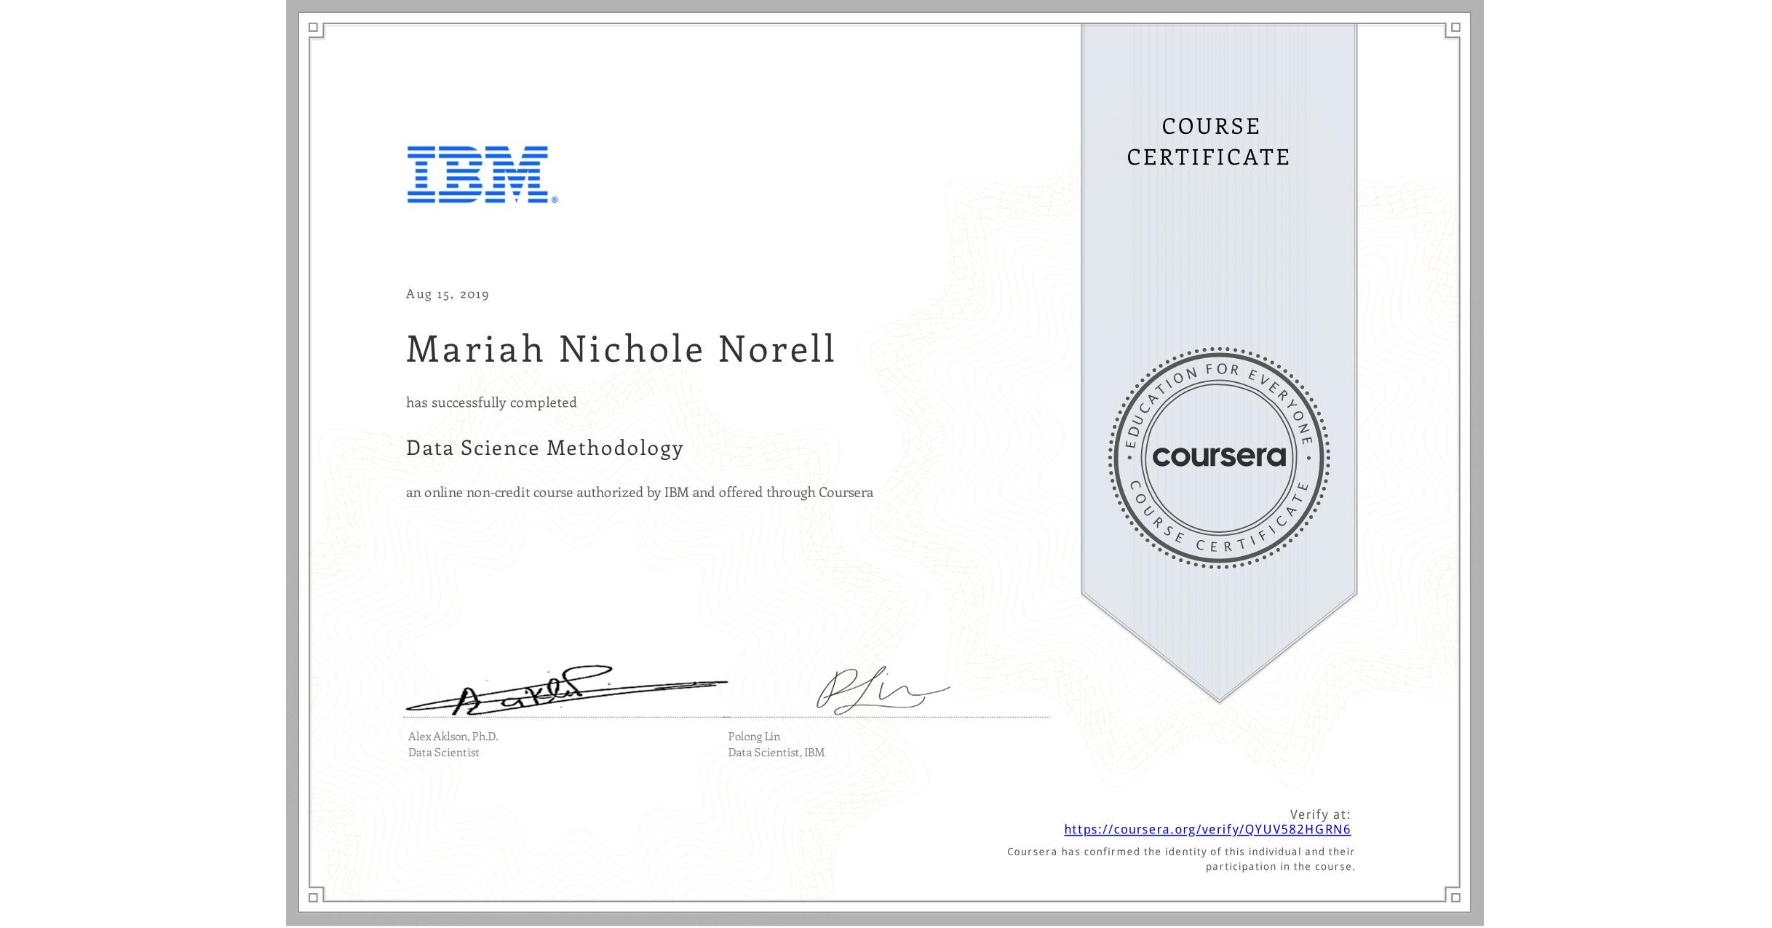 View certificate for Mariah Nichole Norell, Data Science Methodology, an online non-credit course authorized by IBM and offered through Coursera